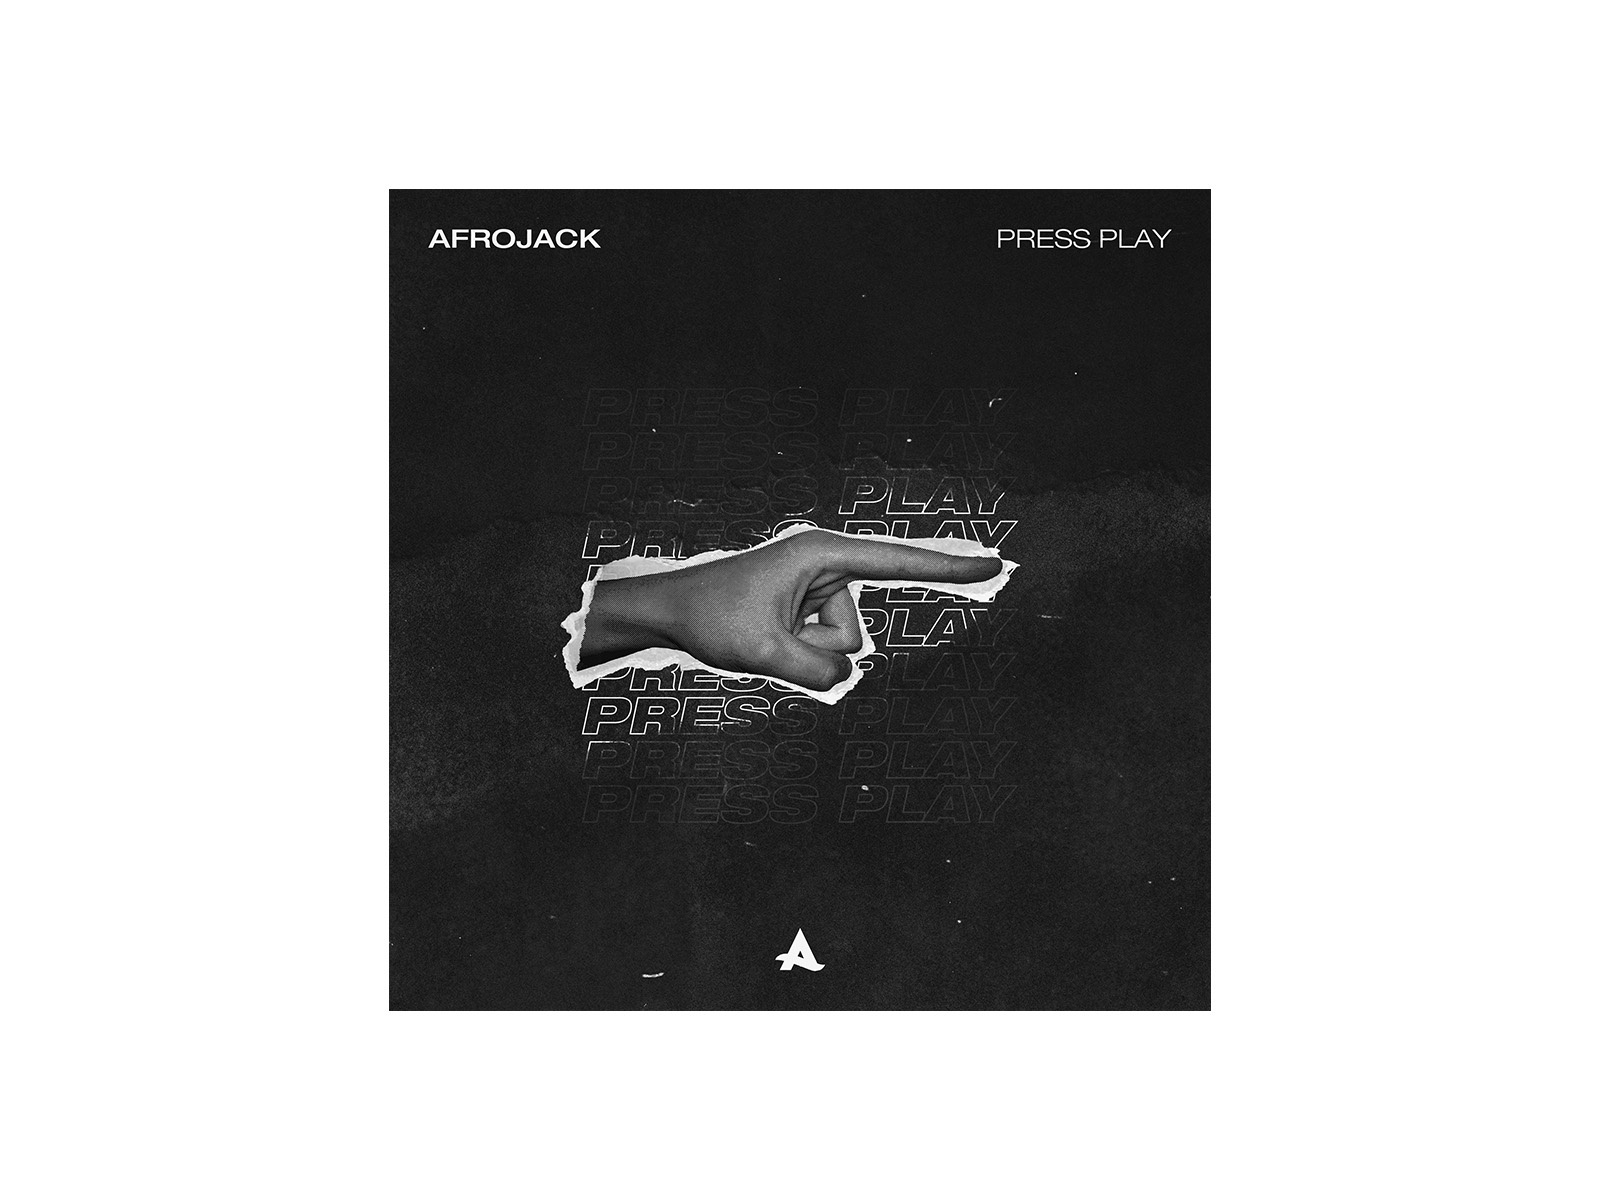 Concept Afrojack single cover